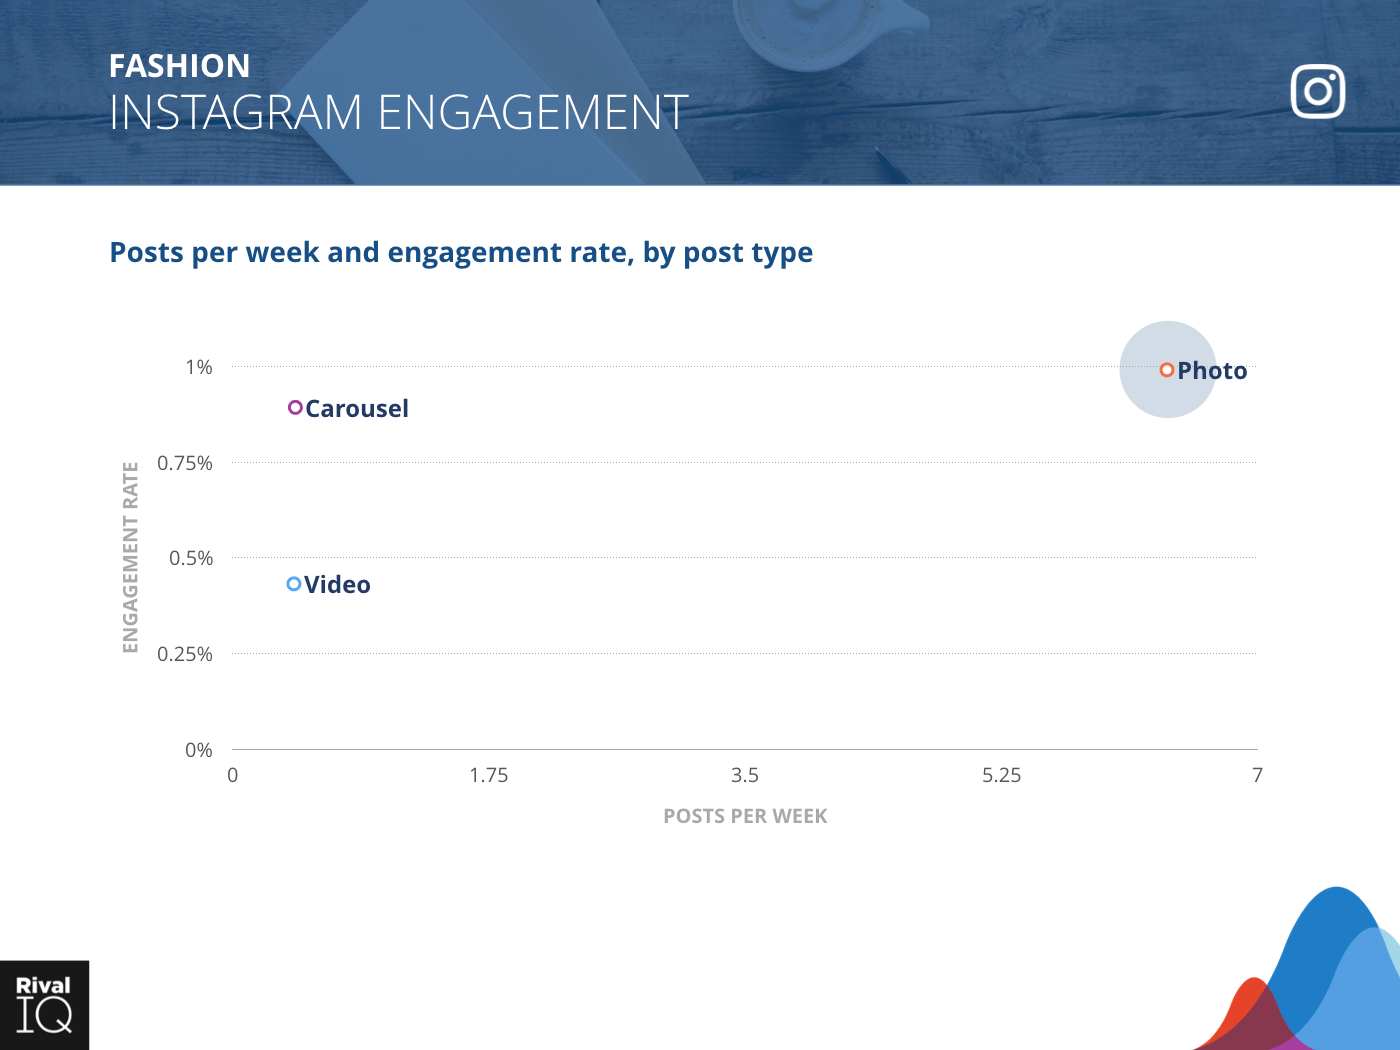 Fashion Industry: scatter graph, average post per week by type and engagement rate on Instagram